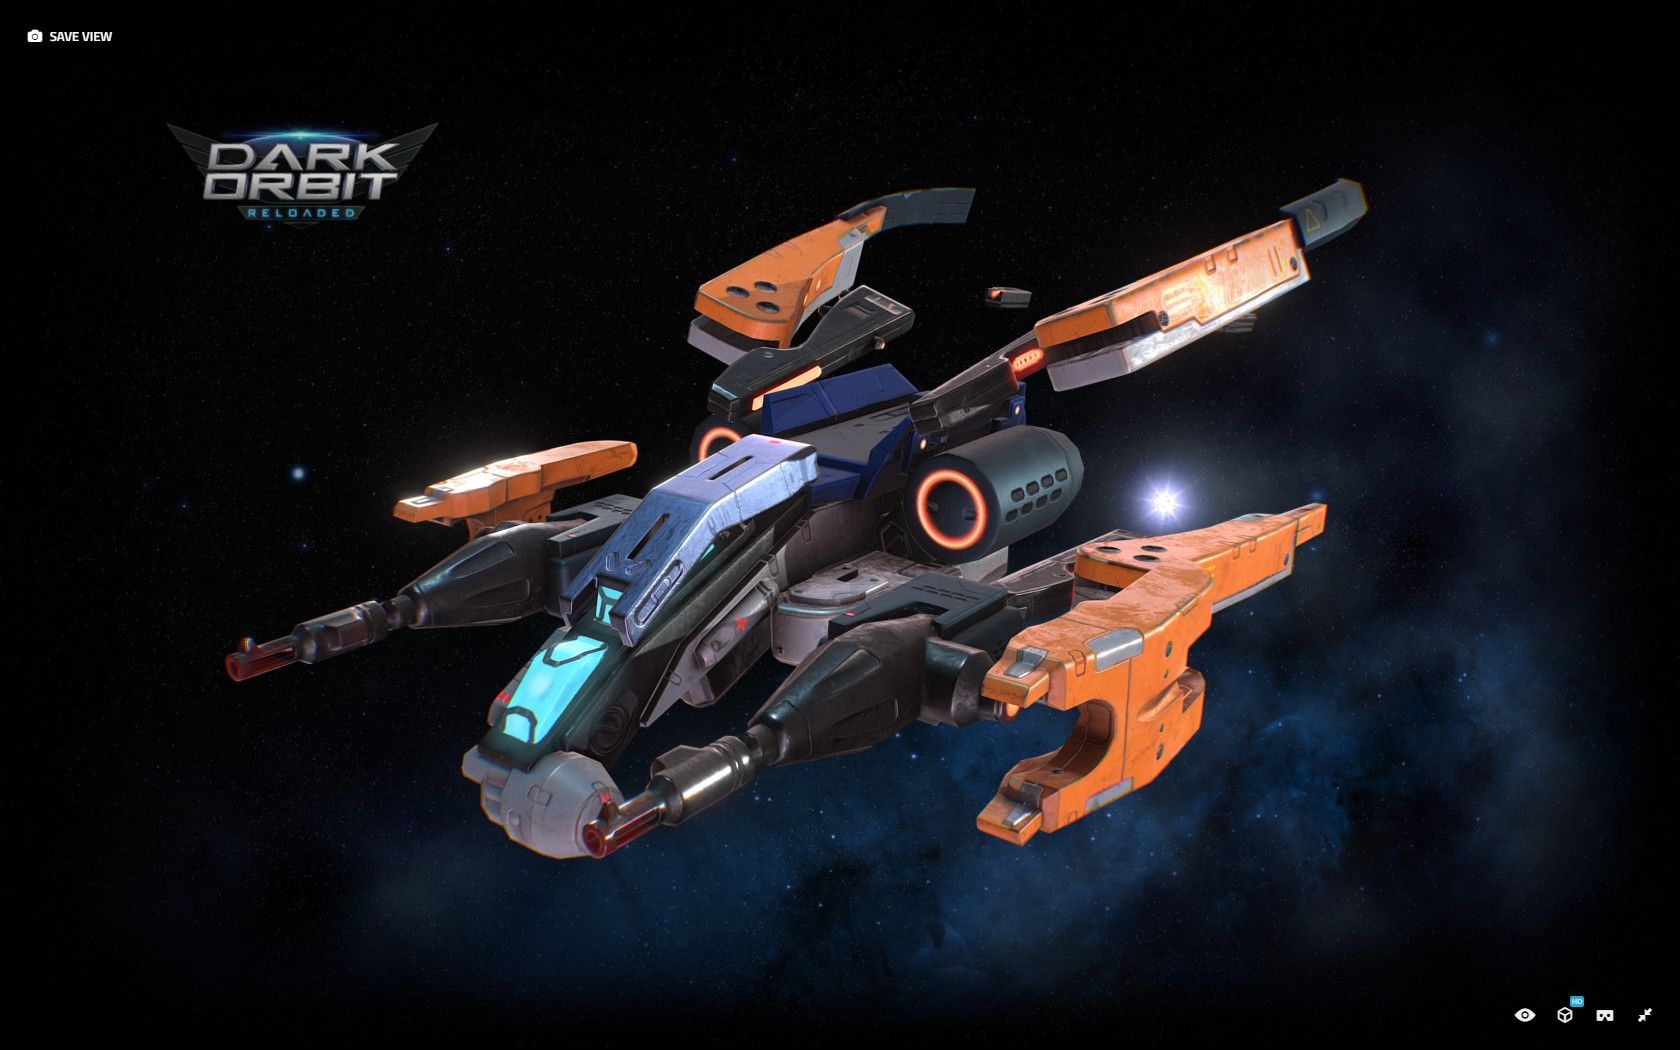 Spaceship I worked on for the game DarkOrbit  Concept by Young-Il